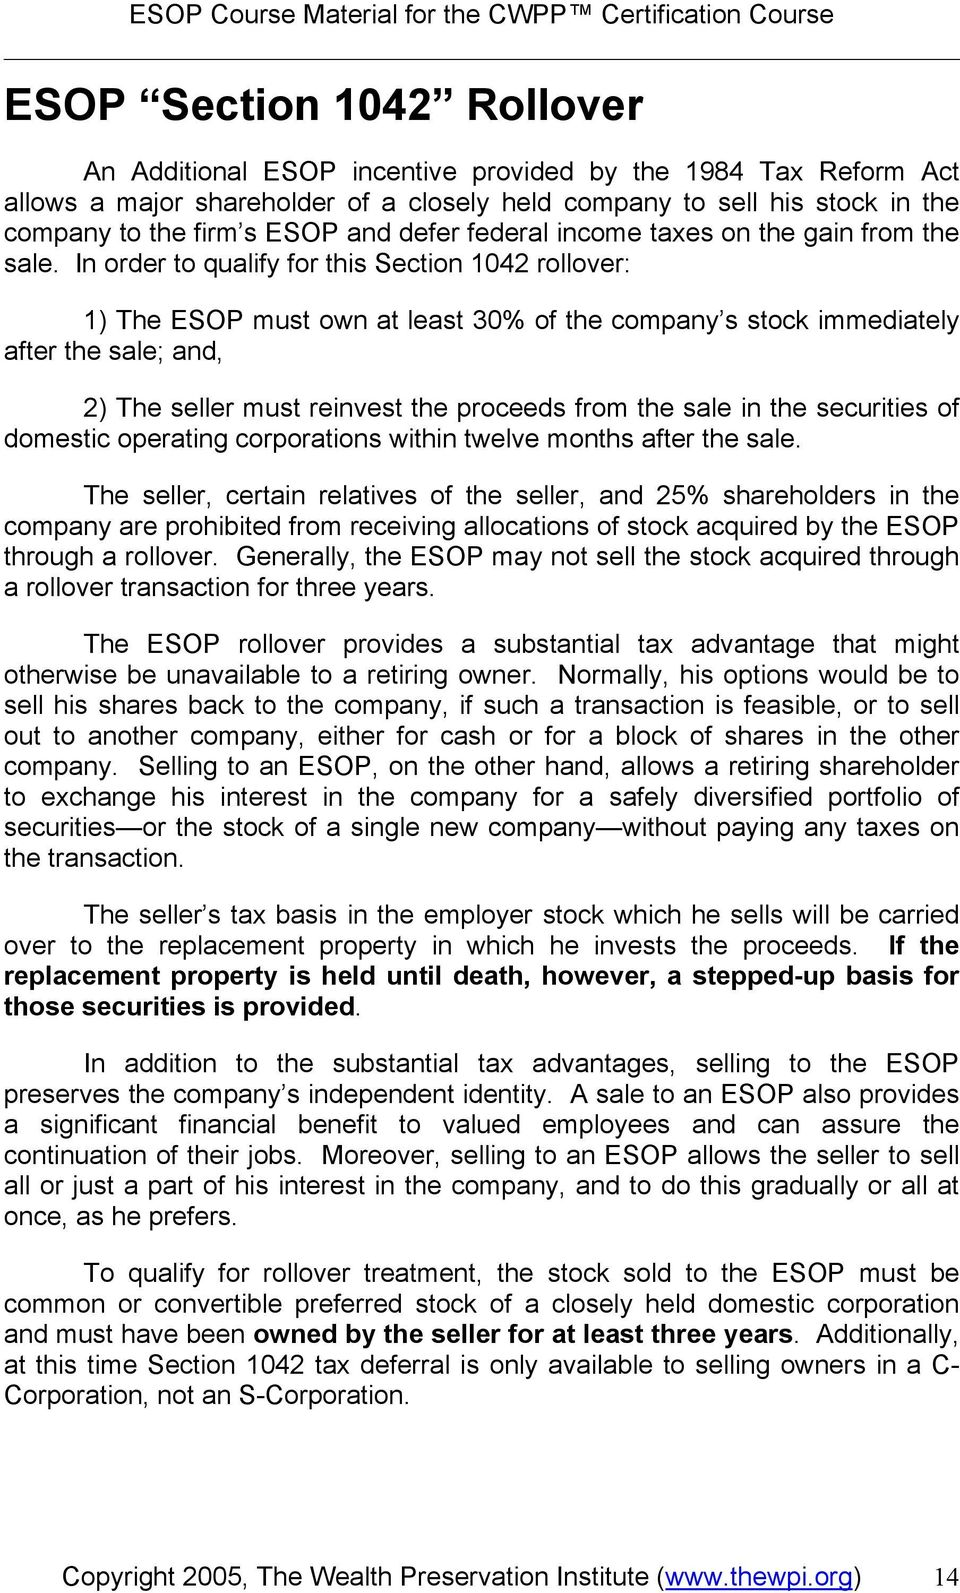 In order to qualify for this Section 1042 rollover: 1) The ESOP must own at least 30% of the company s stock immediately after the sale; and, 2) The seller must reinvest the proceeds from the sale in